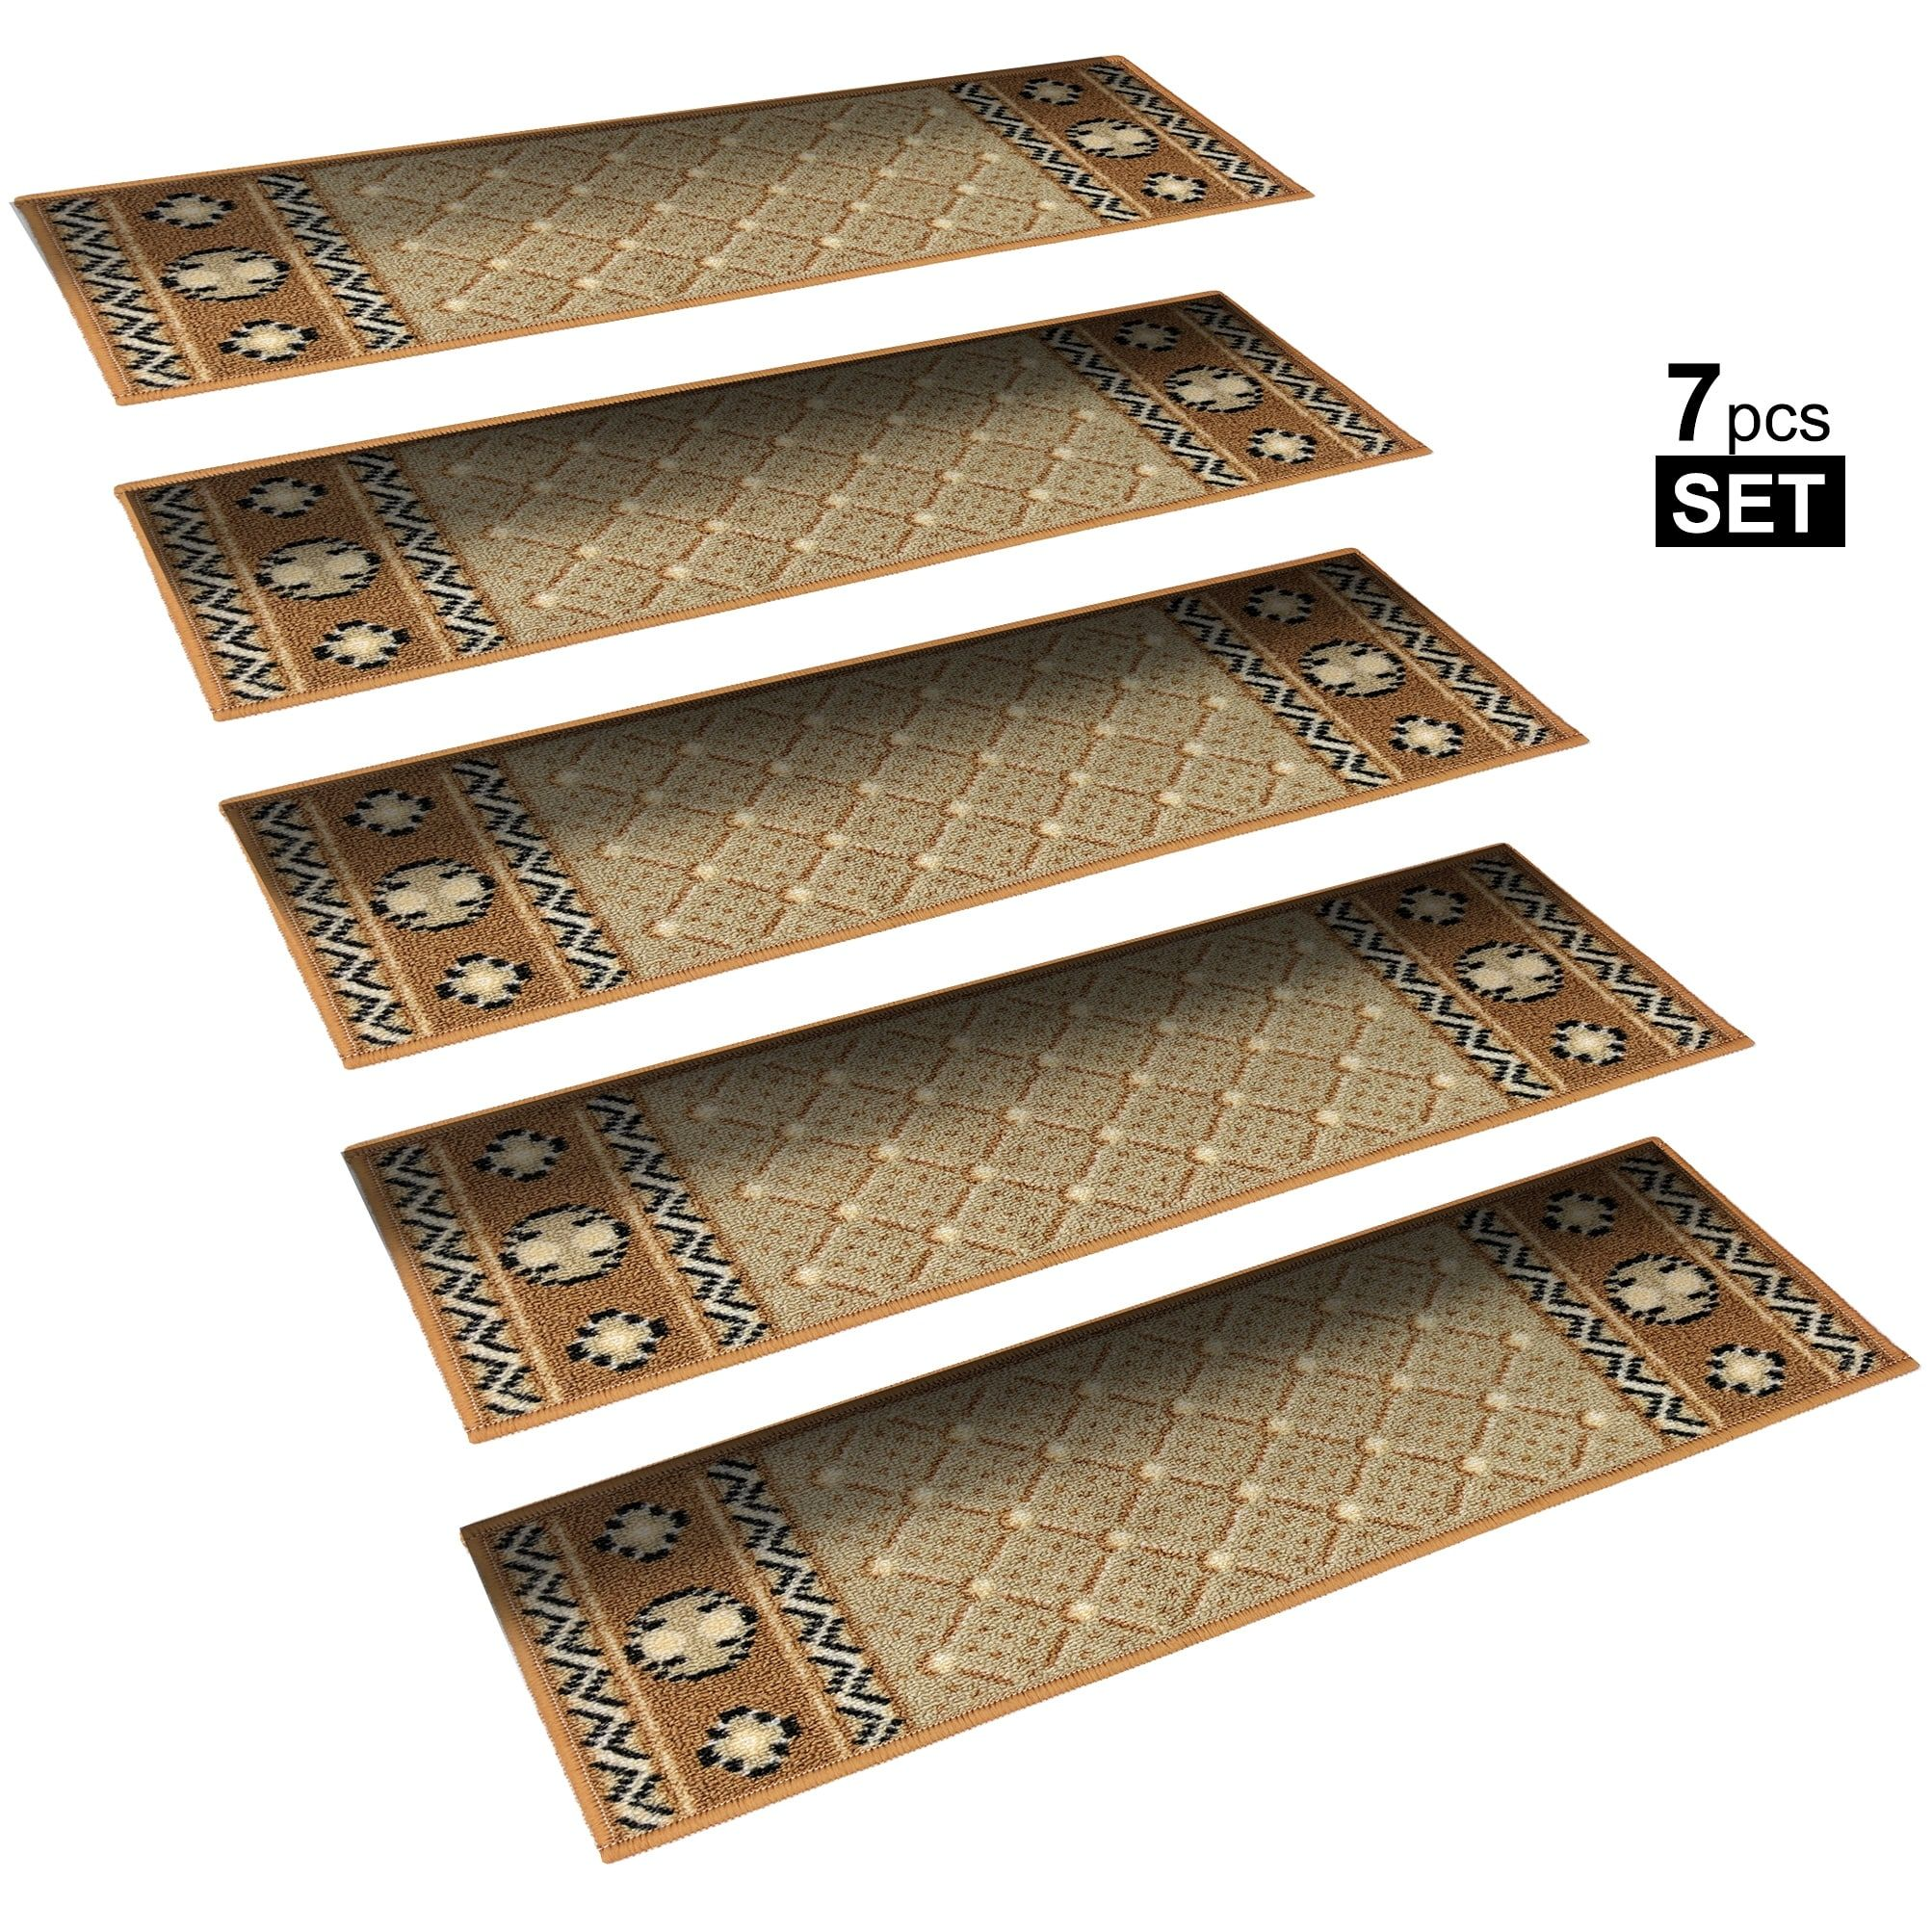 Non Slip Mats Rubber Backing Stair Treads Set Of 7 8 5 X 26